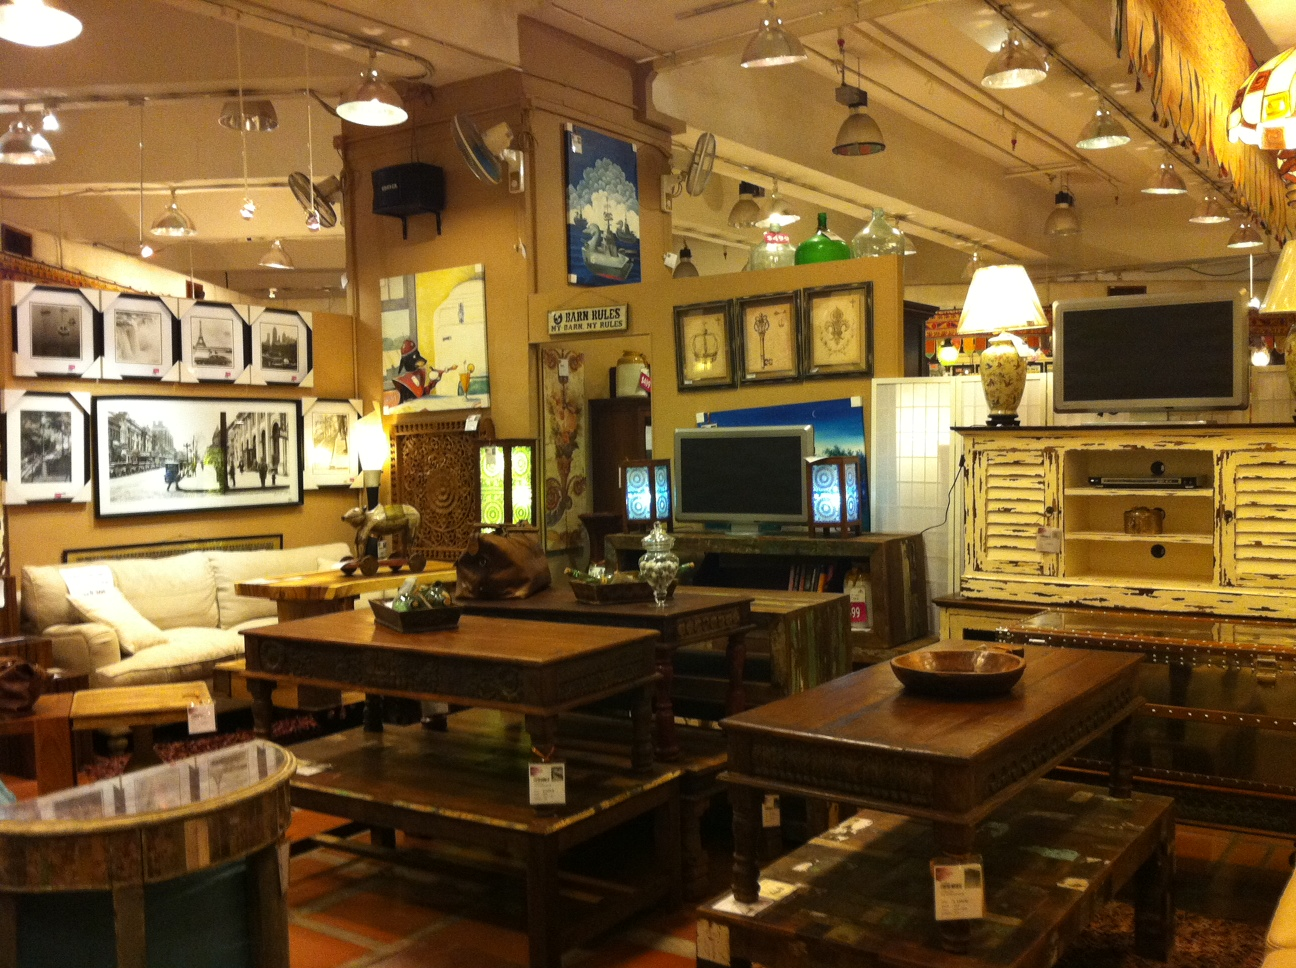 Local 39 S Guide To Hong Kong Shopping For Quirky Home Decor